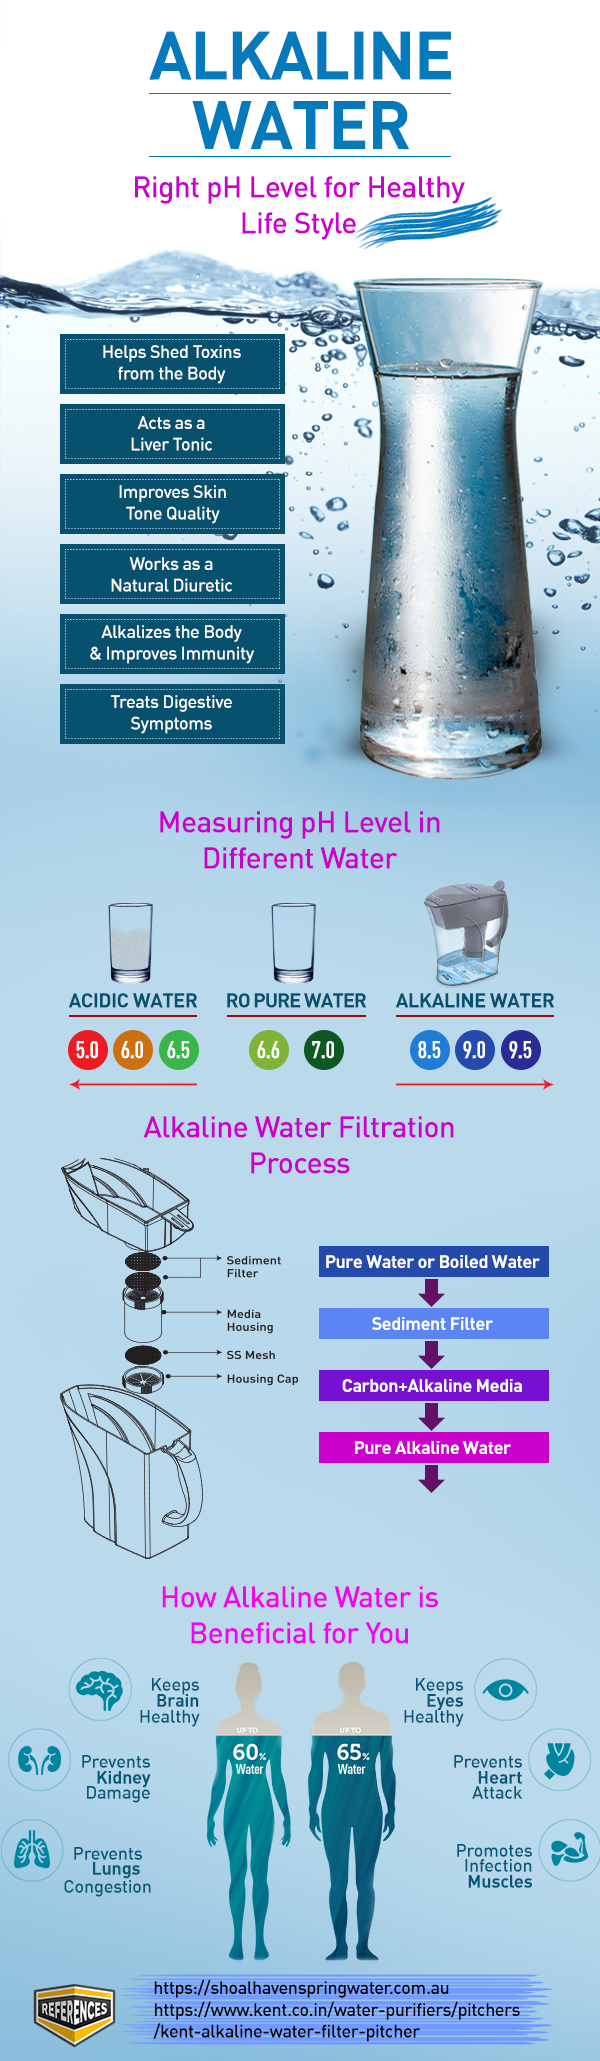 Alkaline-Water-Filter